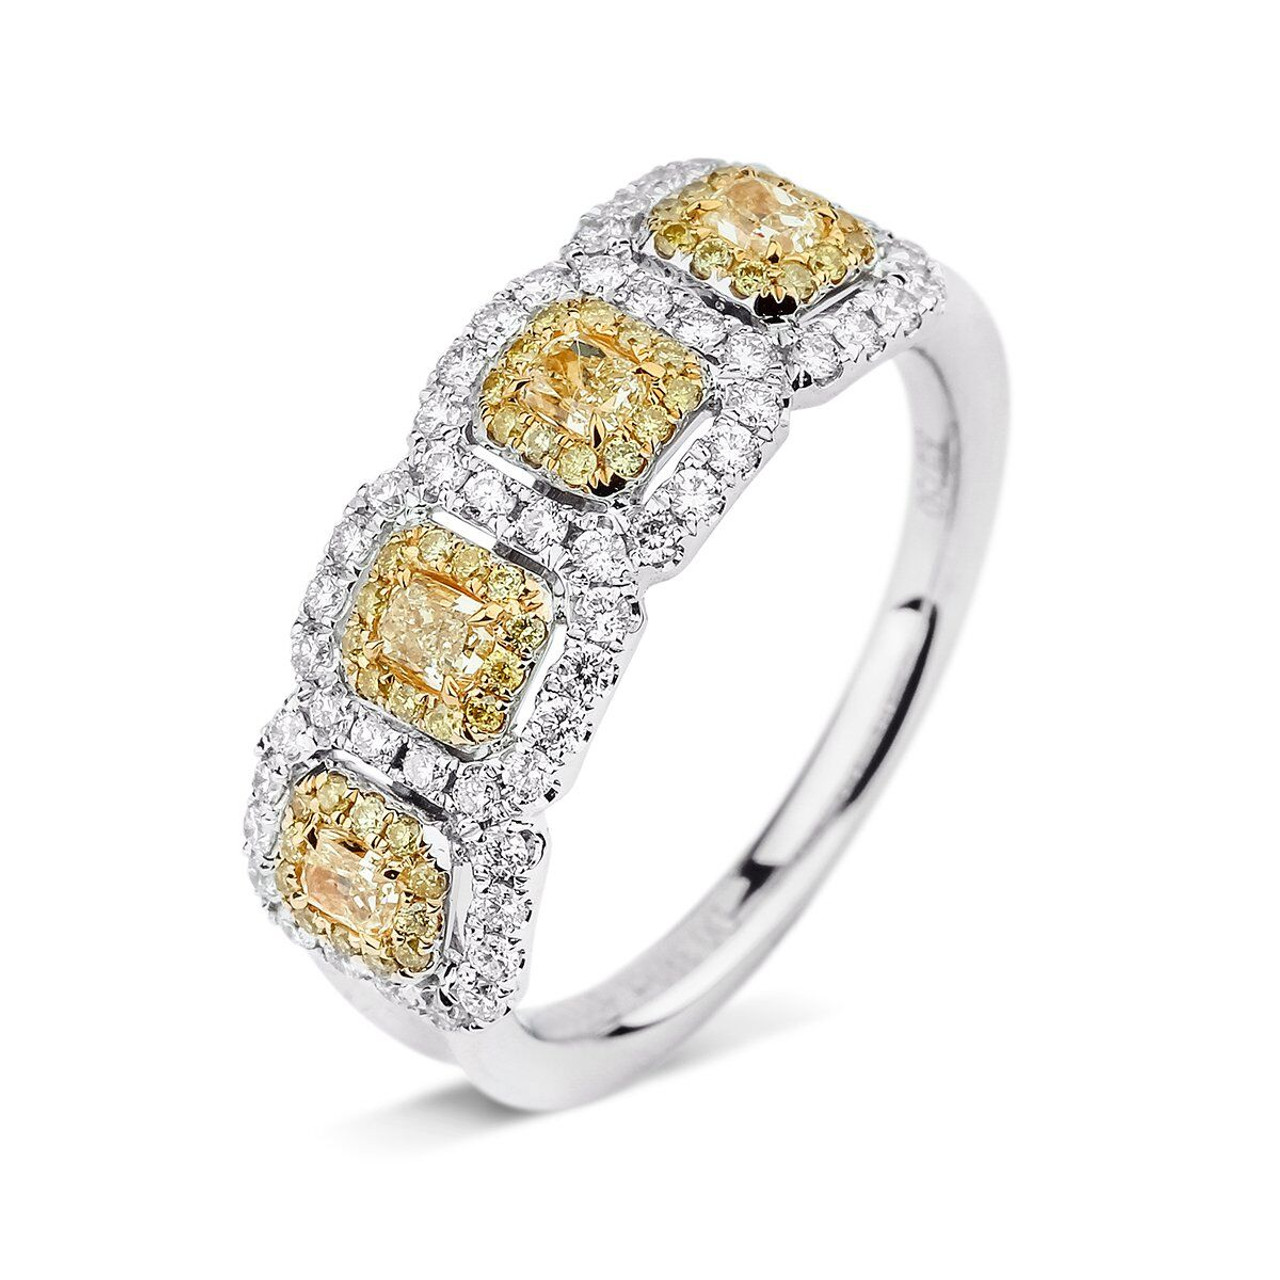 stone rings engagement mens gold wh wedding p band diamond